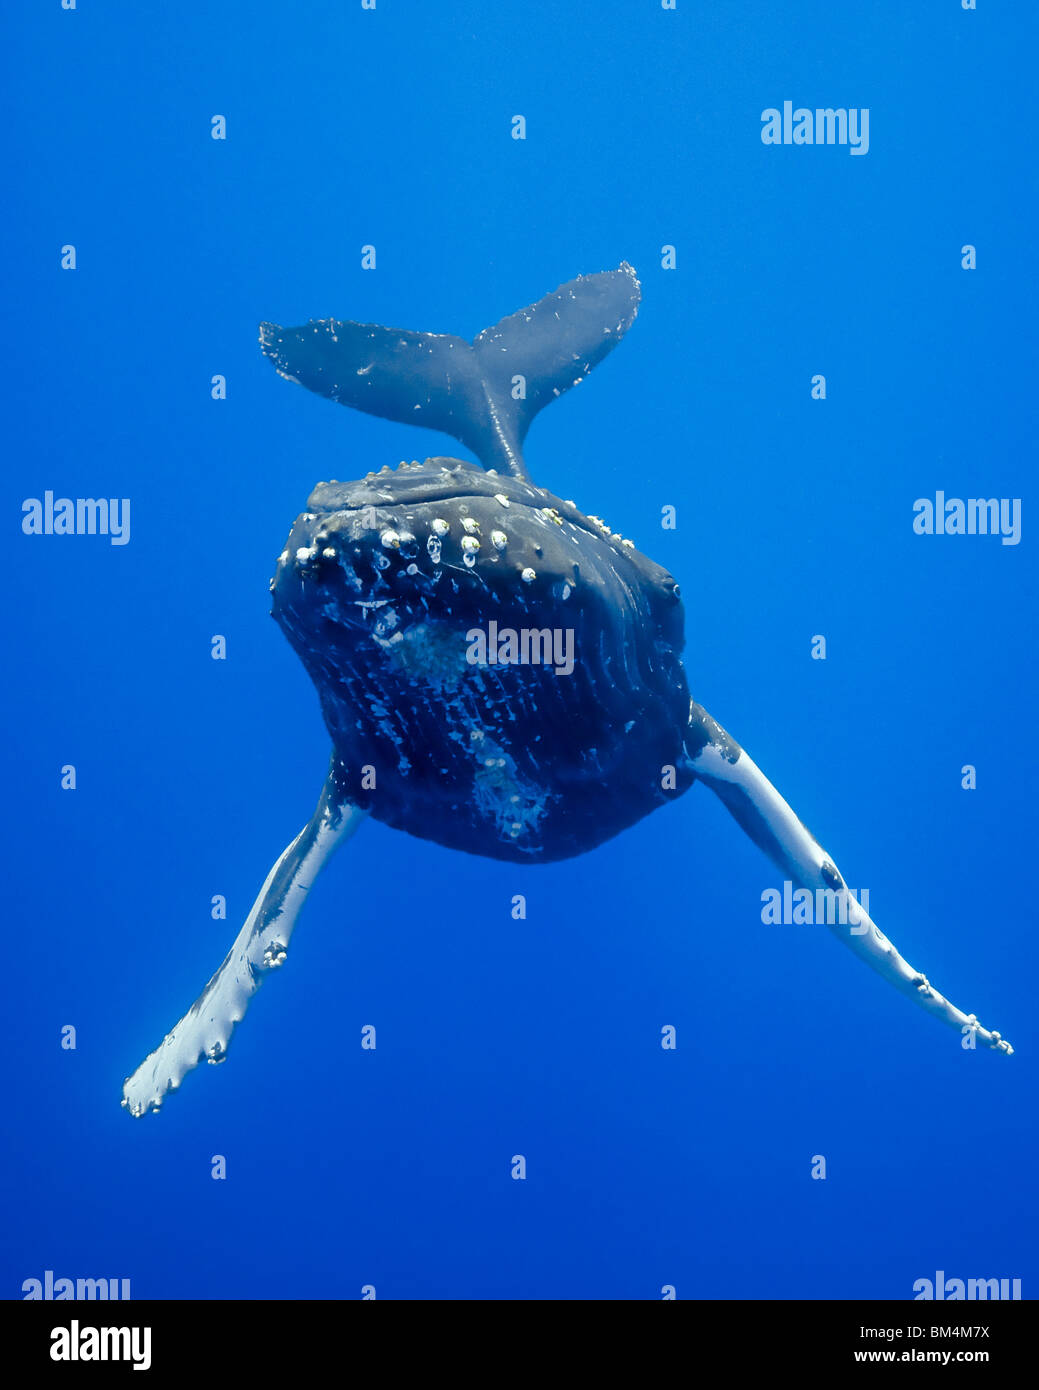 Humpback Whale, Megaptera novaeangliae, Pacific Ocean, Hawaii, USA - Stock Image